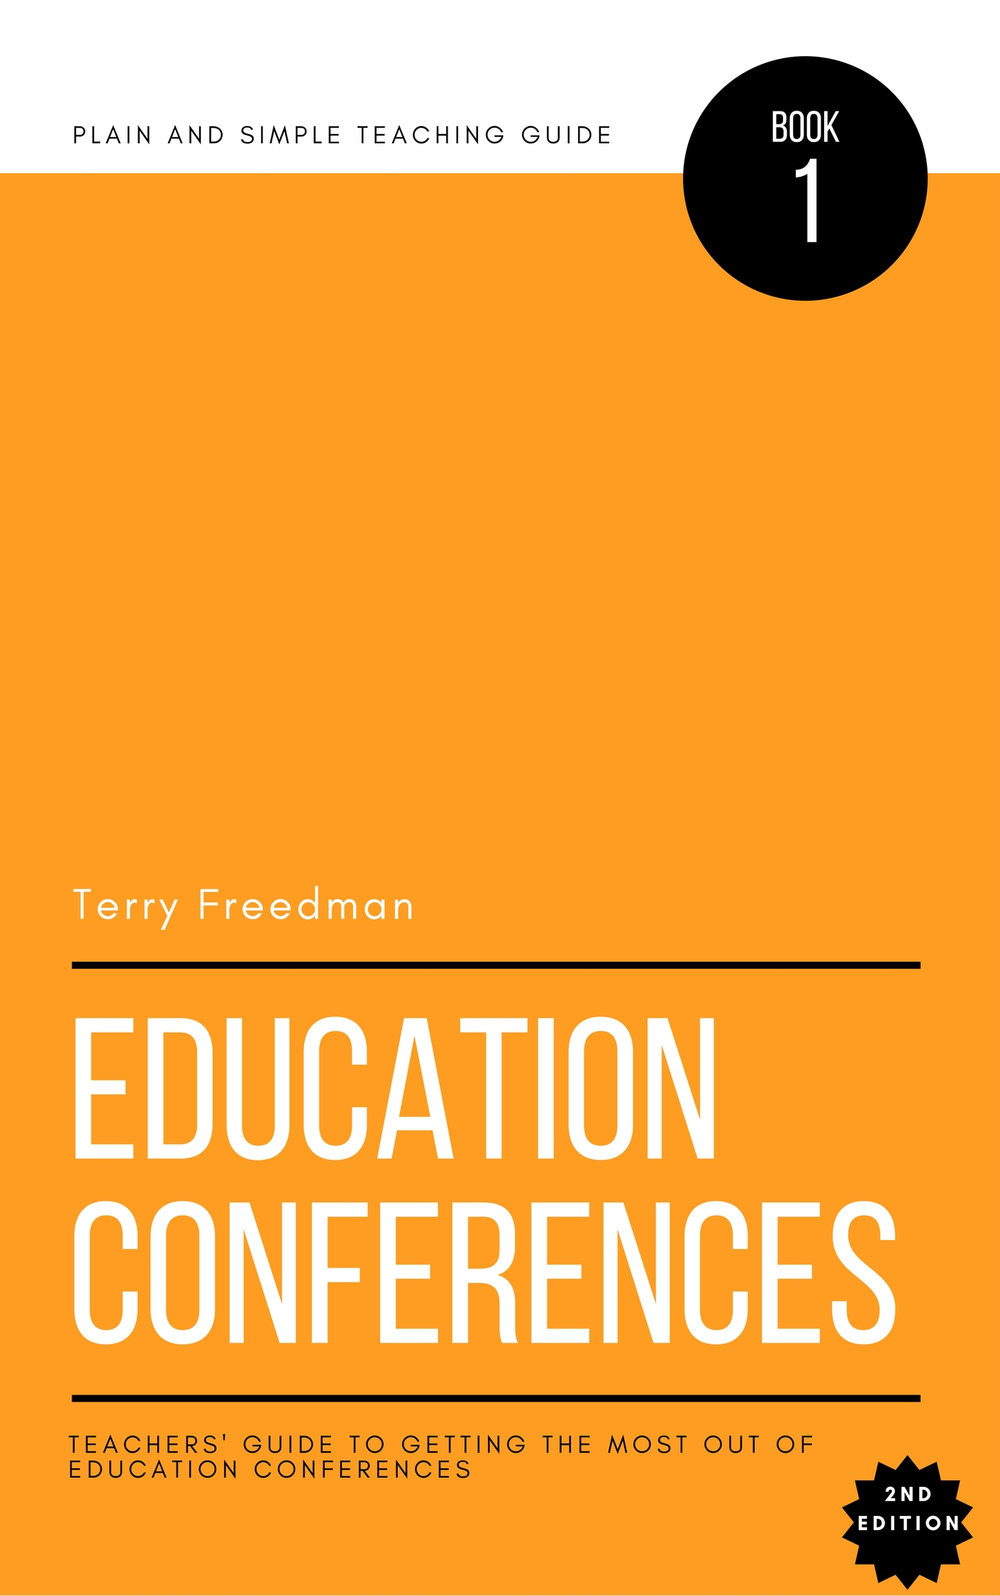 Education Conferences: Teachers' guide to getting the most out of education conferences.